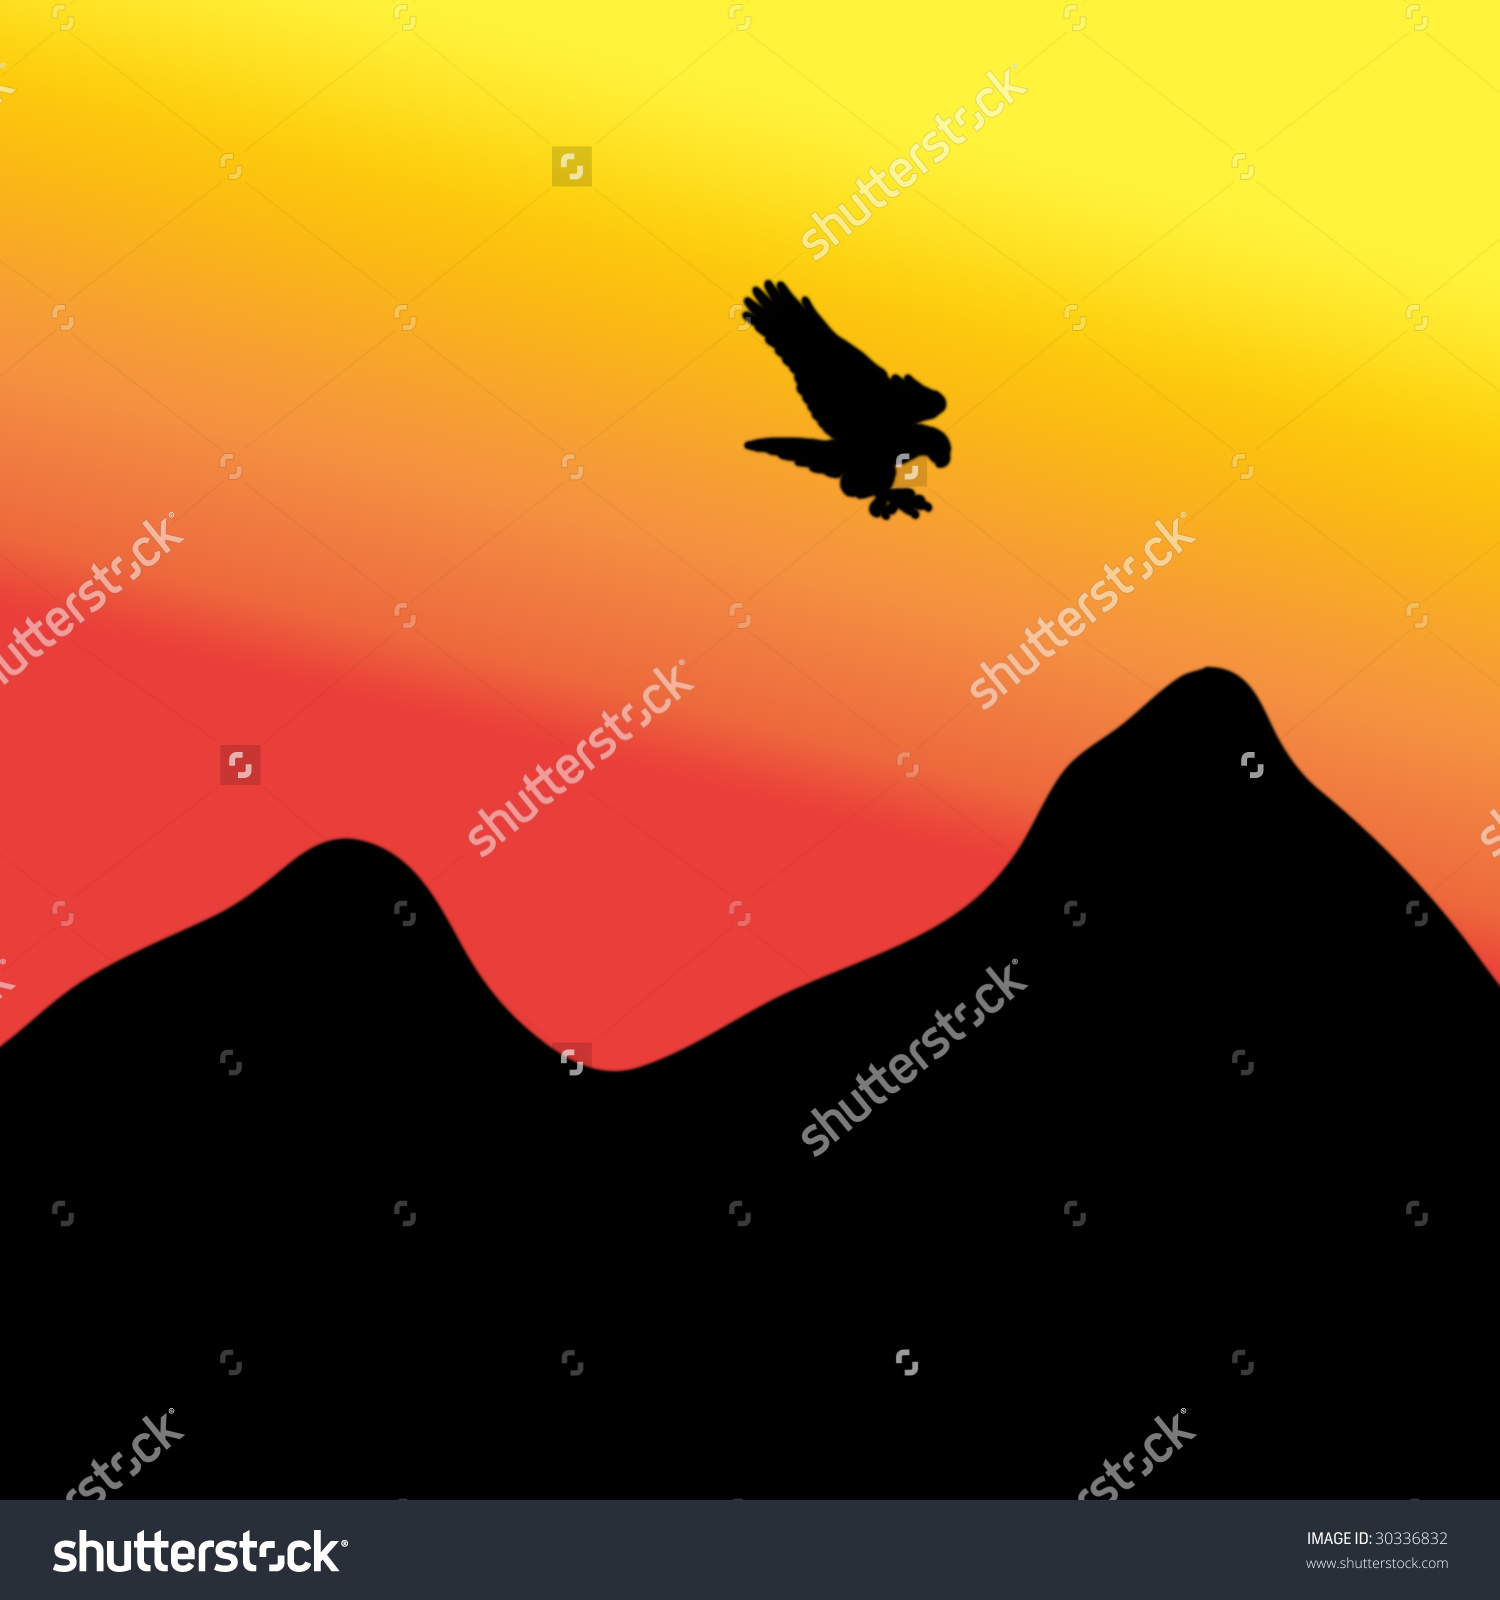 Mountain silhouette abstract clipart.